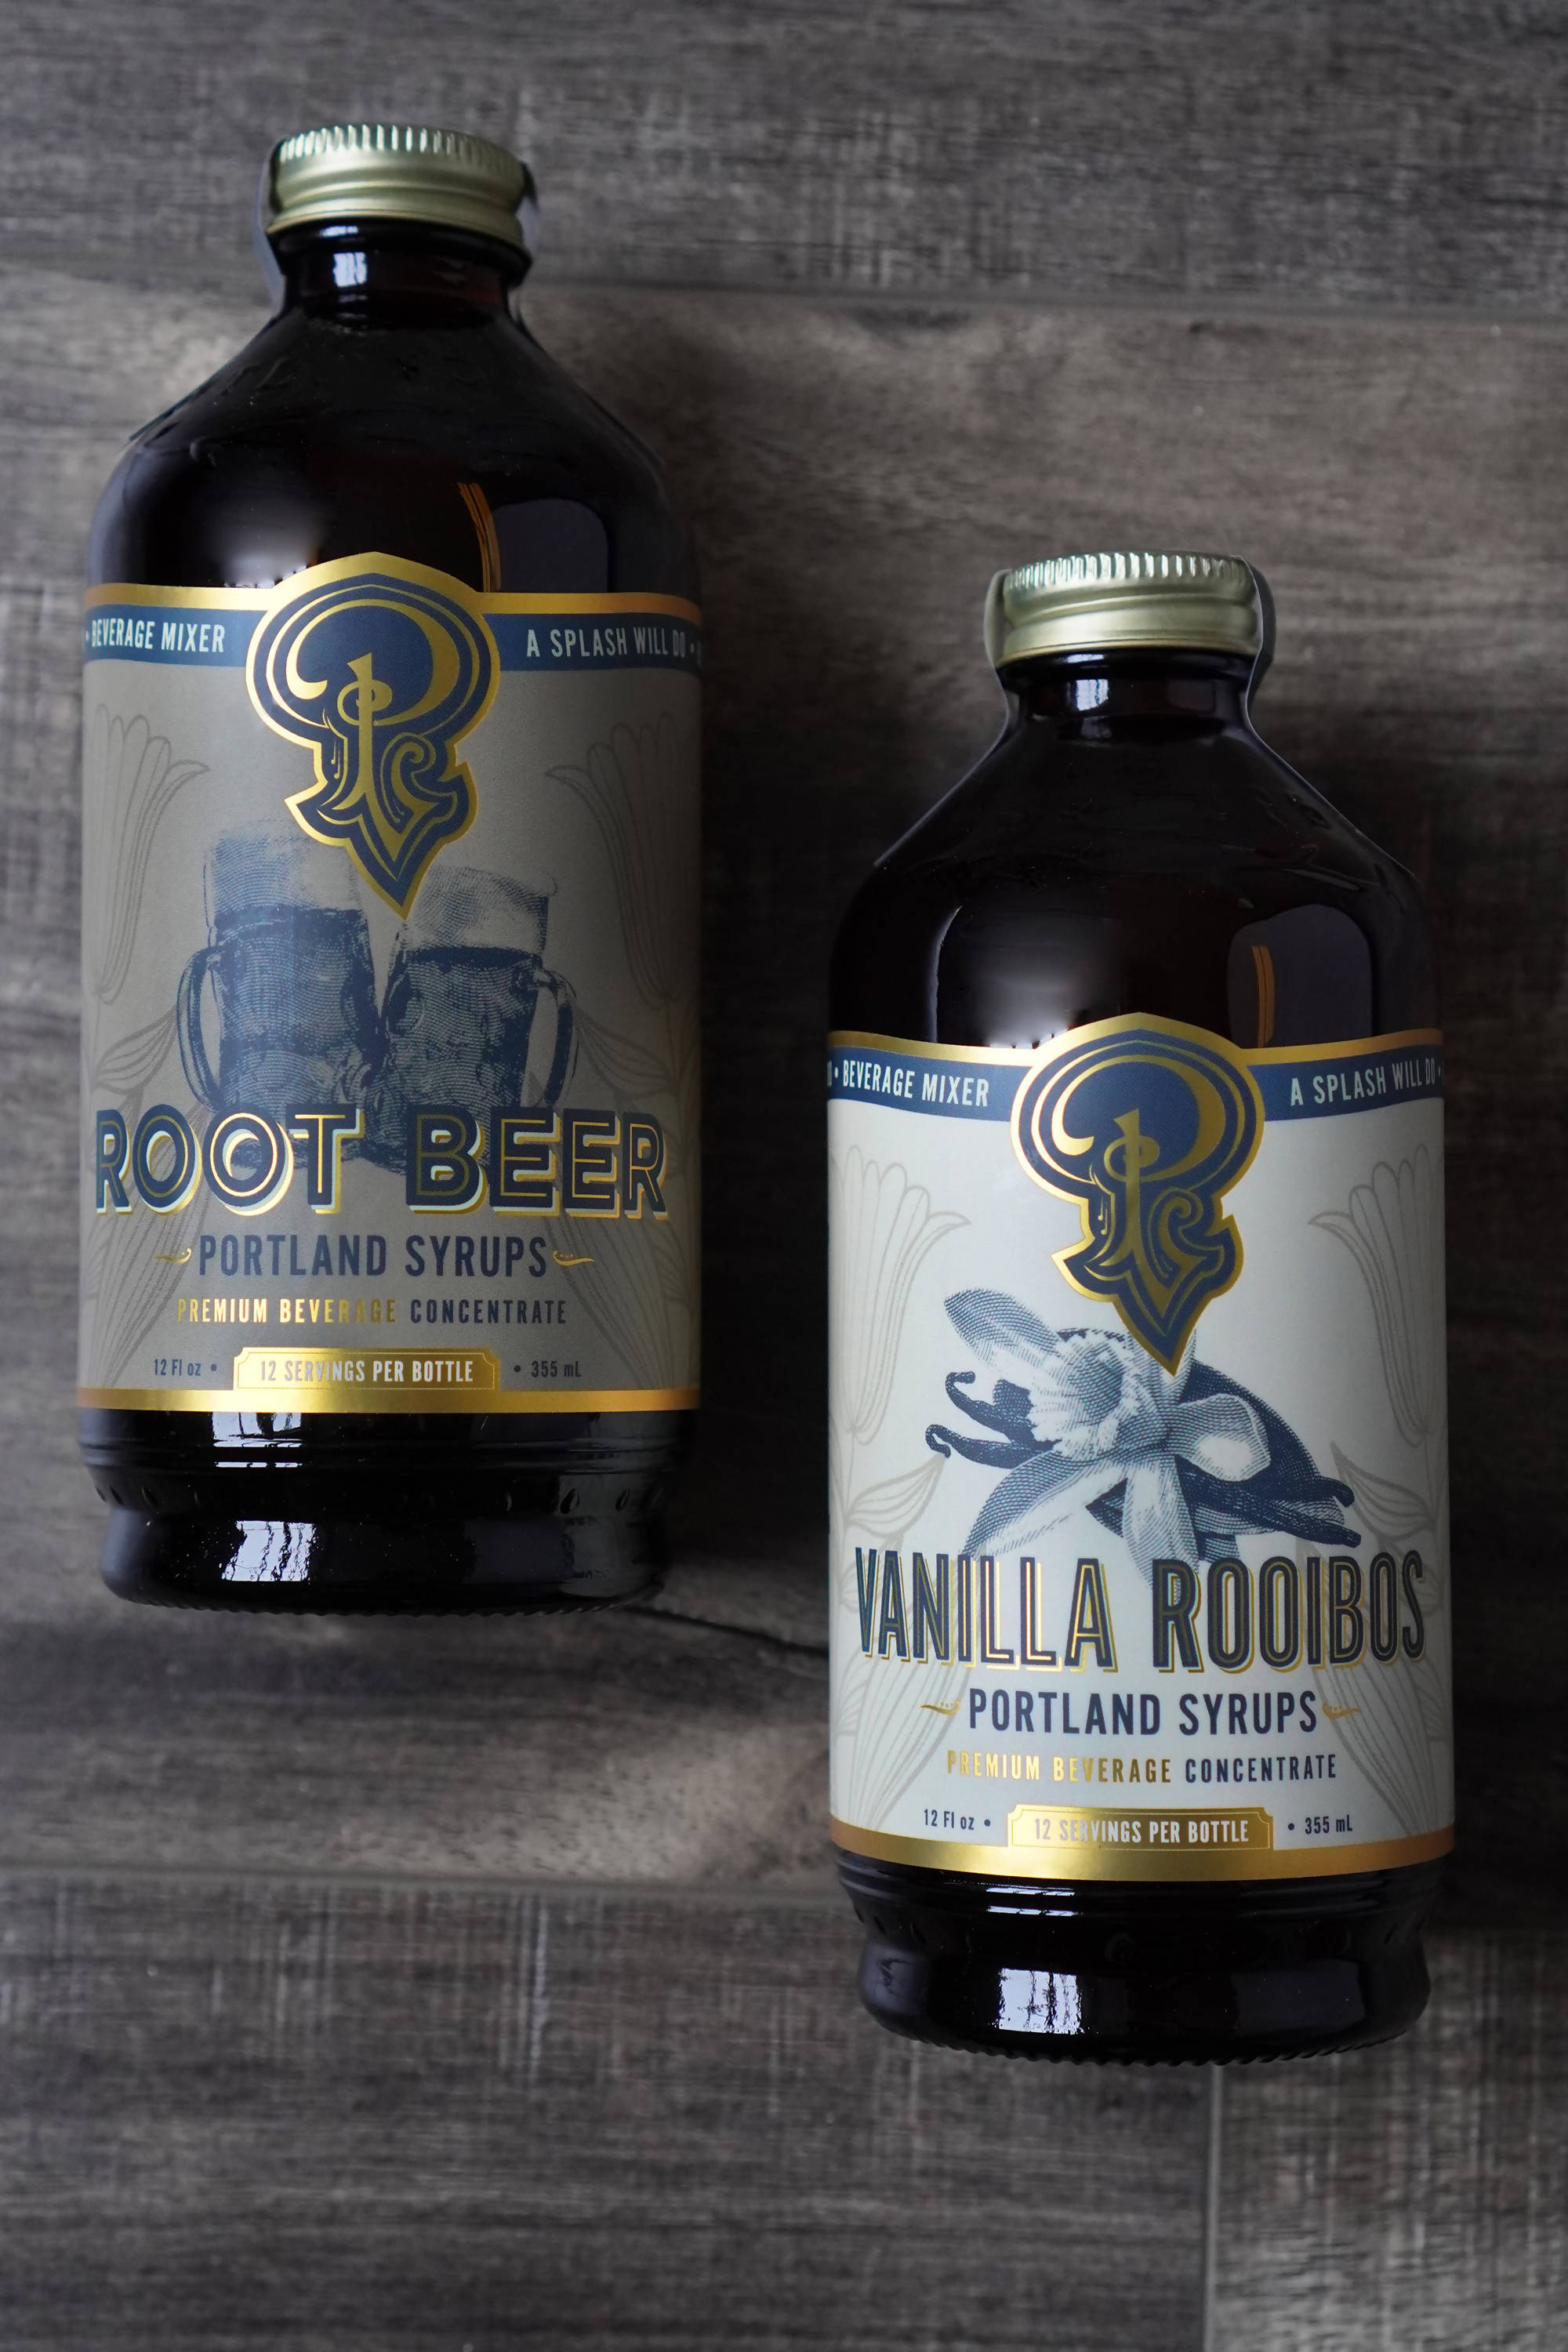 Root Beer and Vanilla Rooibos Syrup